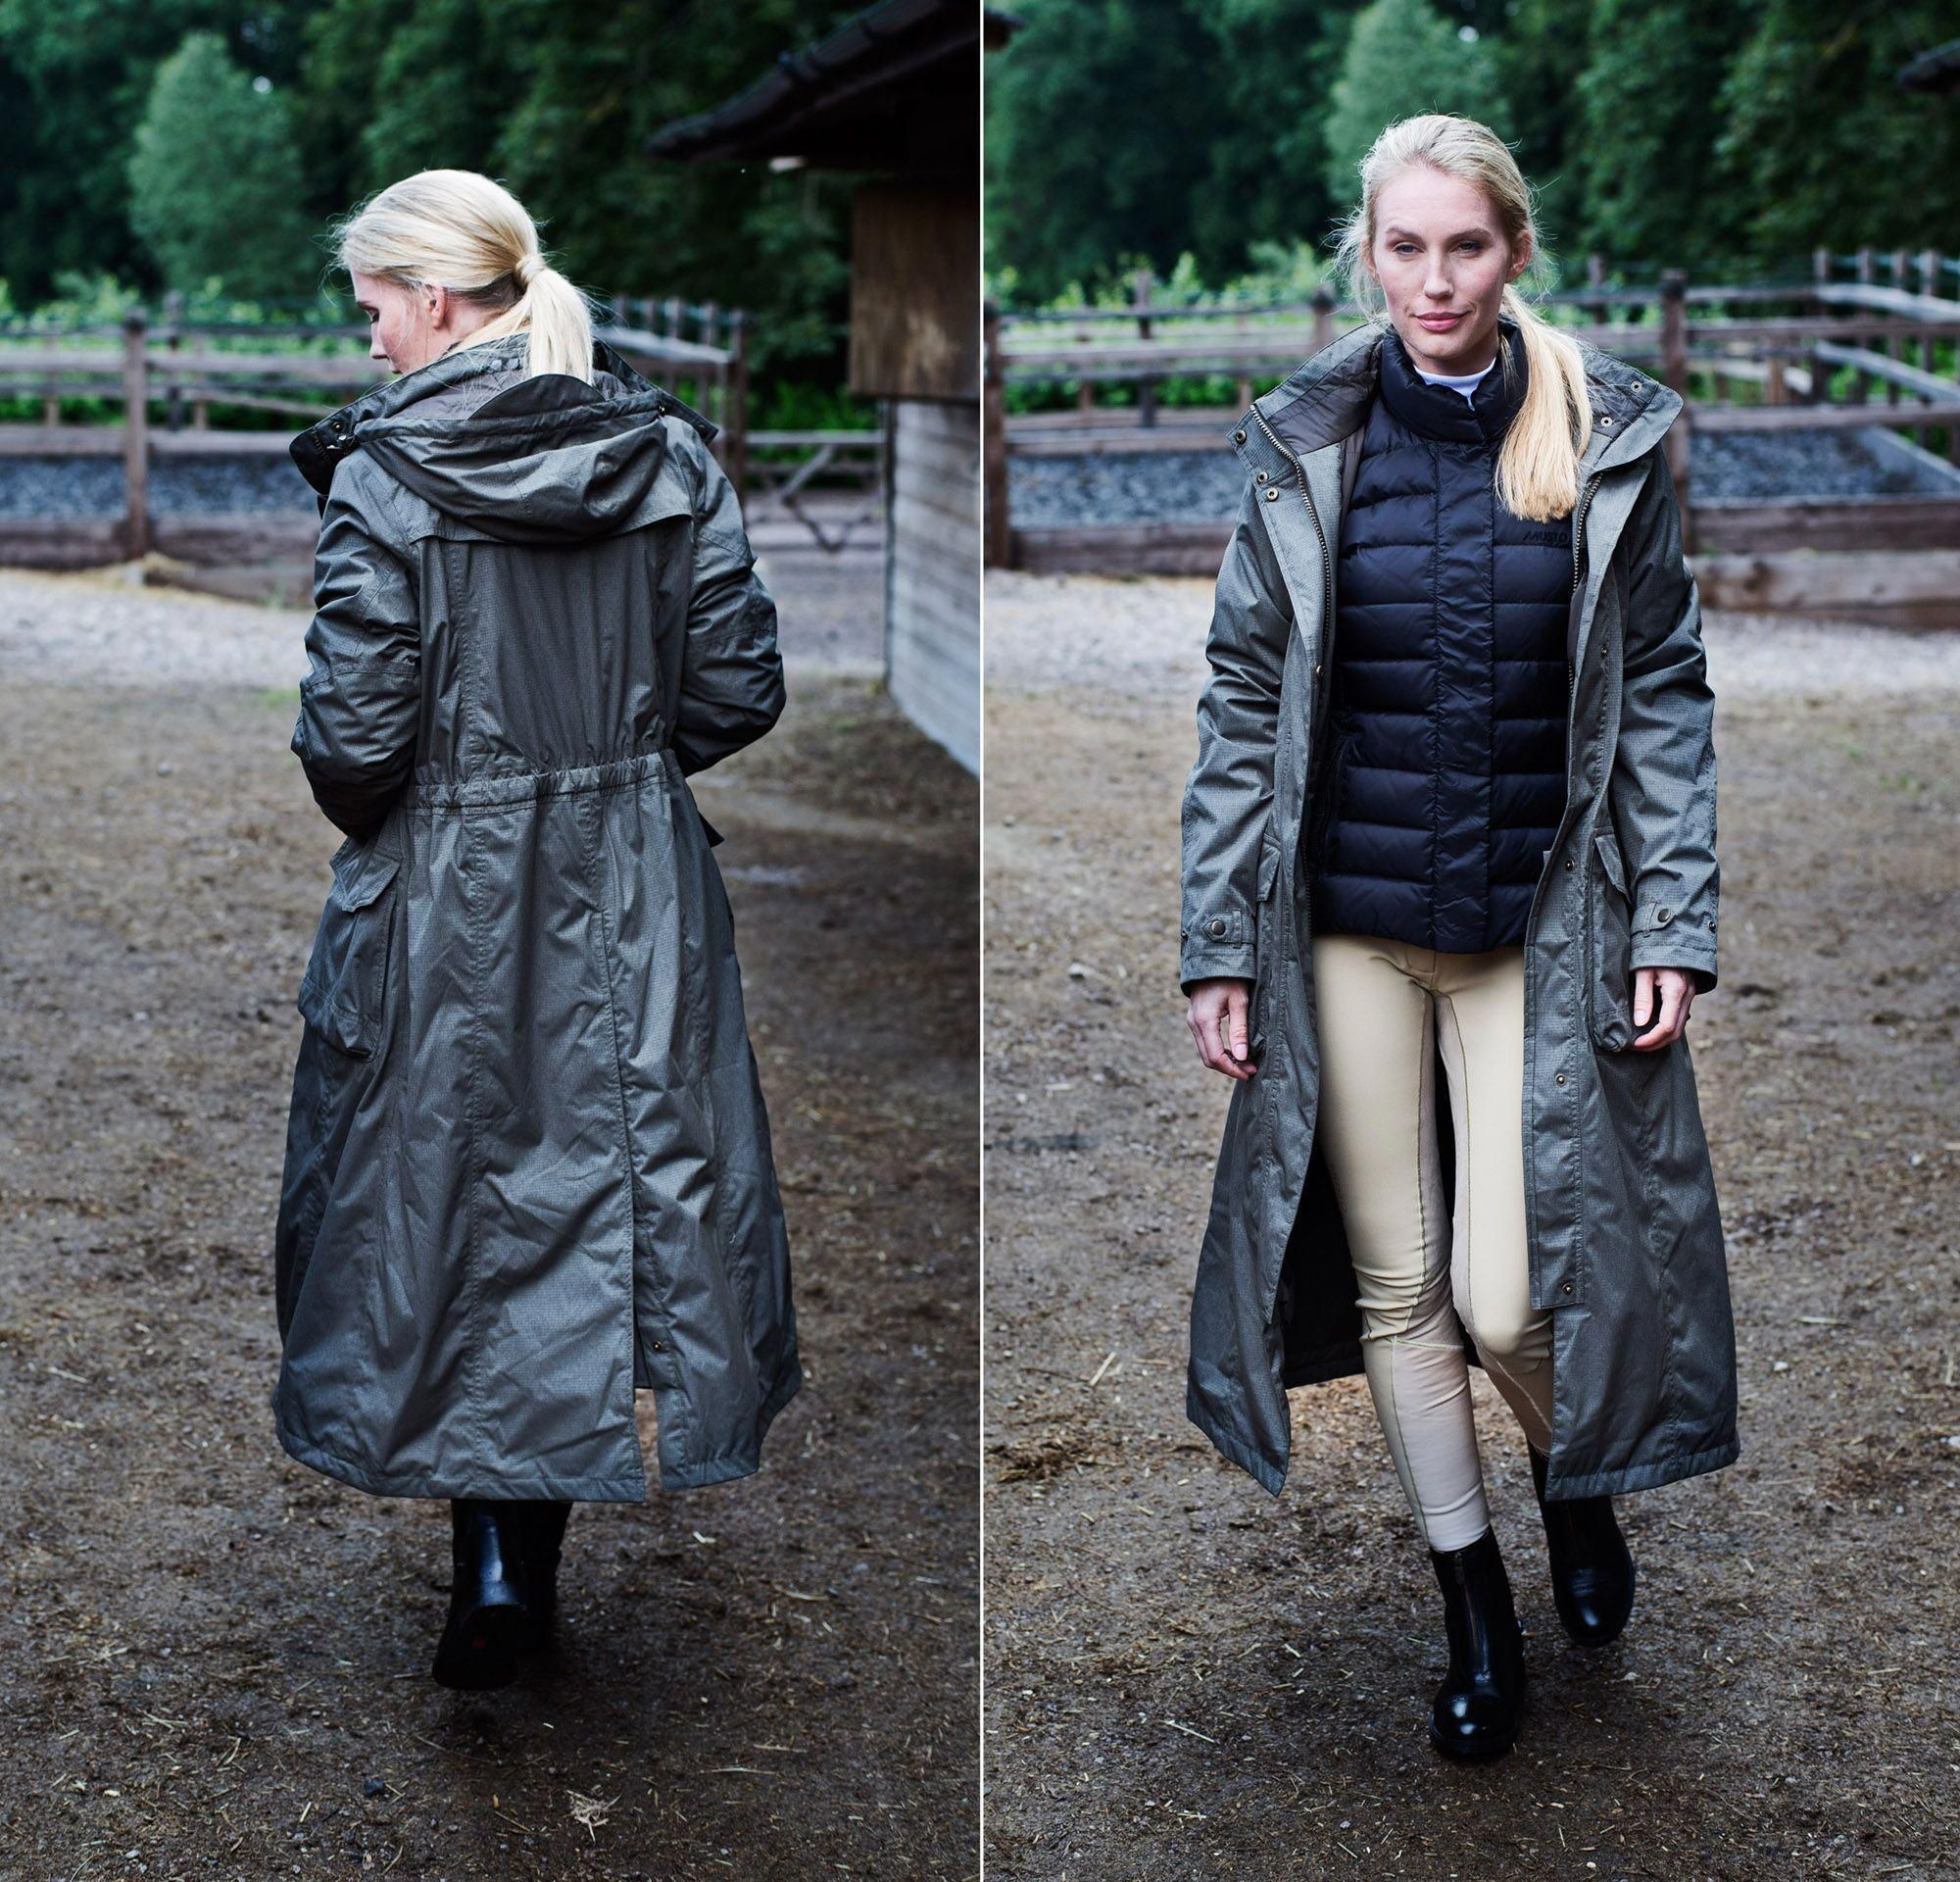 Musto Ladies Suffolk Riding Coat Equestrian Practicality Musto Style Equestrianfashion Equestrian Outfits Equestrian Helmet Riding Outfit [ 1920 x 2000 Pixel ]